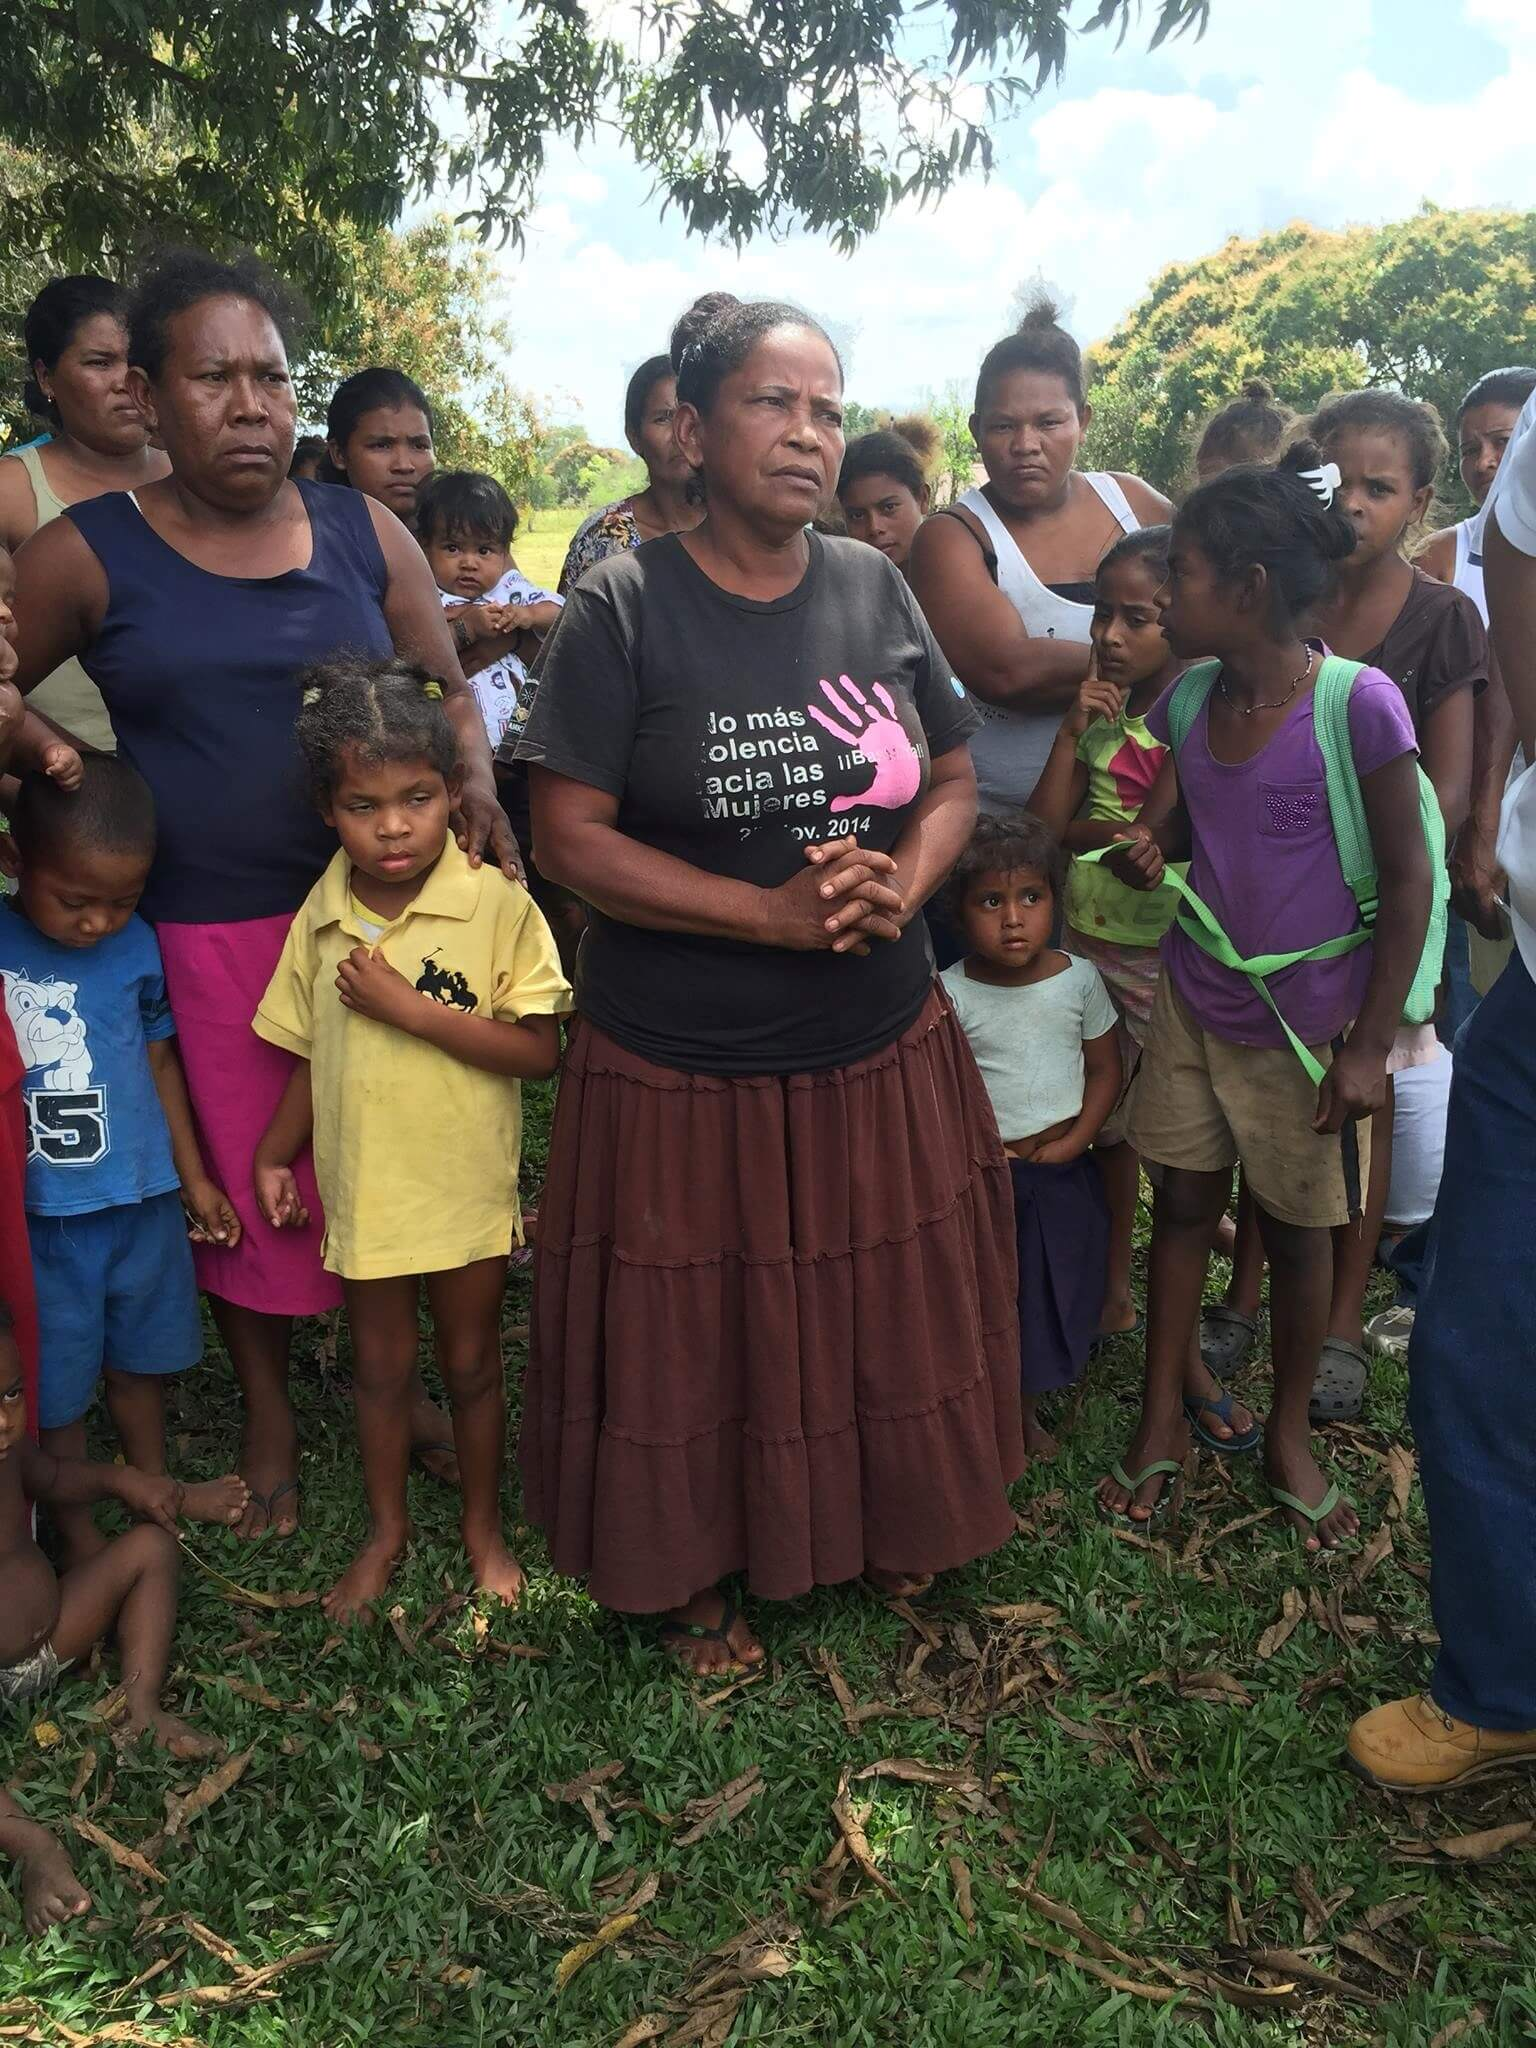 Surrounded by community members, a Miskito woman stands with her daughter – in the yellow shirt – who was shot in the head by a 'colonos'. Photo: Courtney Parker, Intercontinental Cry, 2016